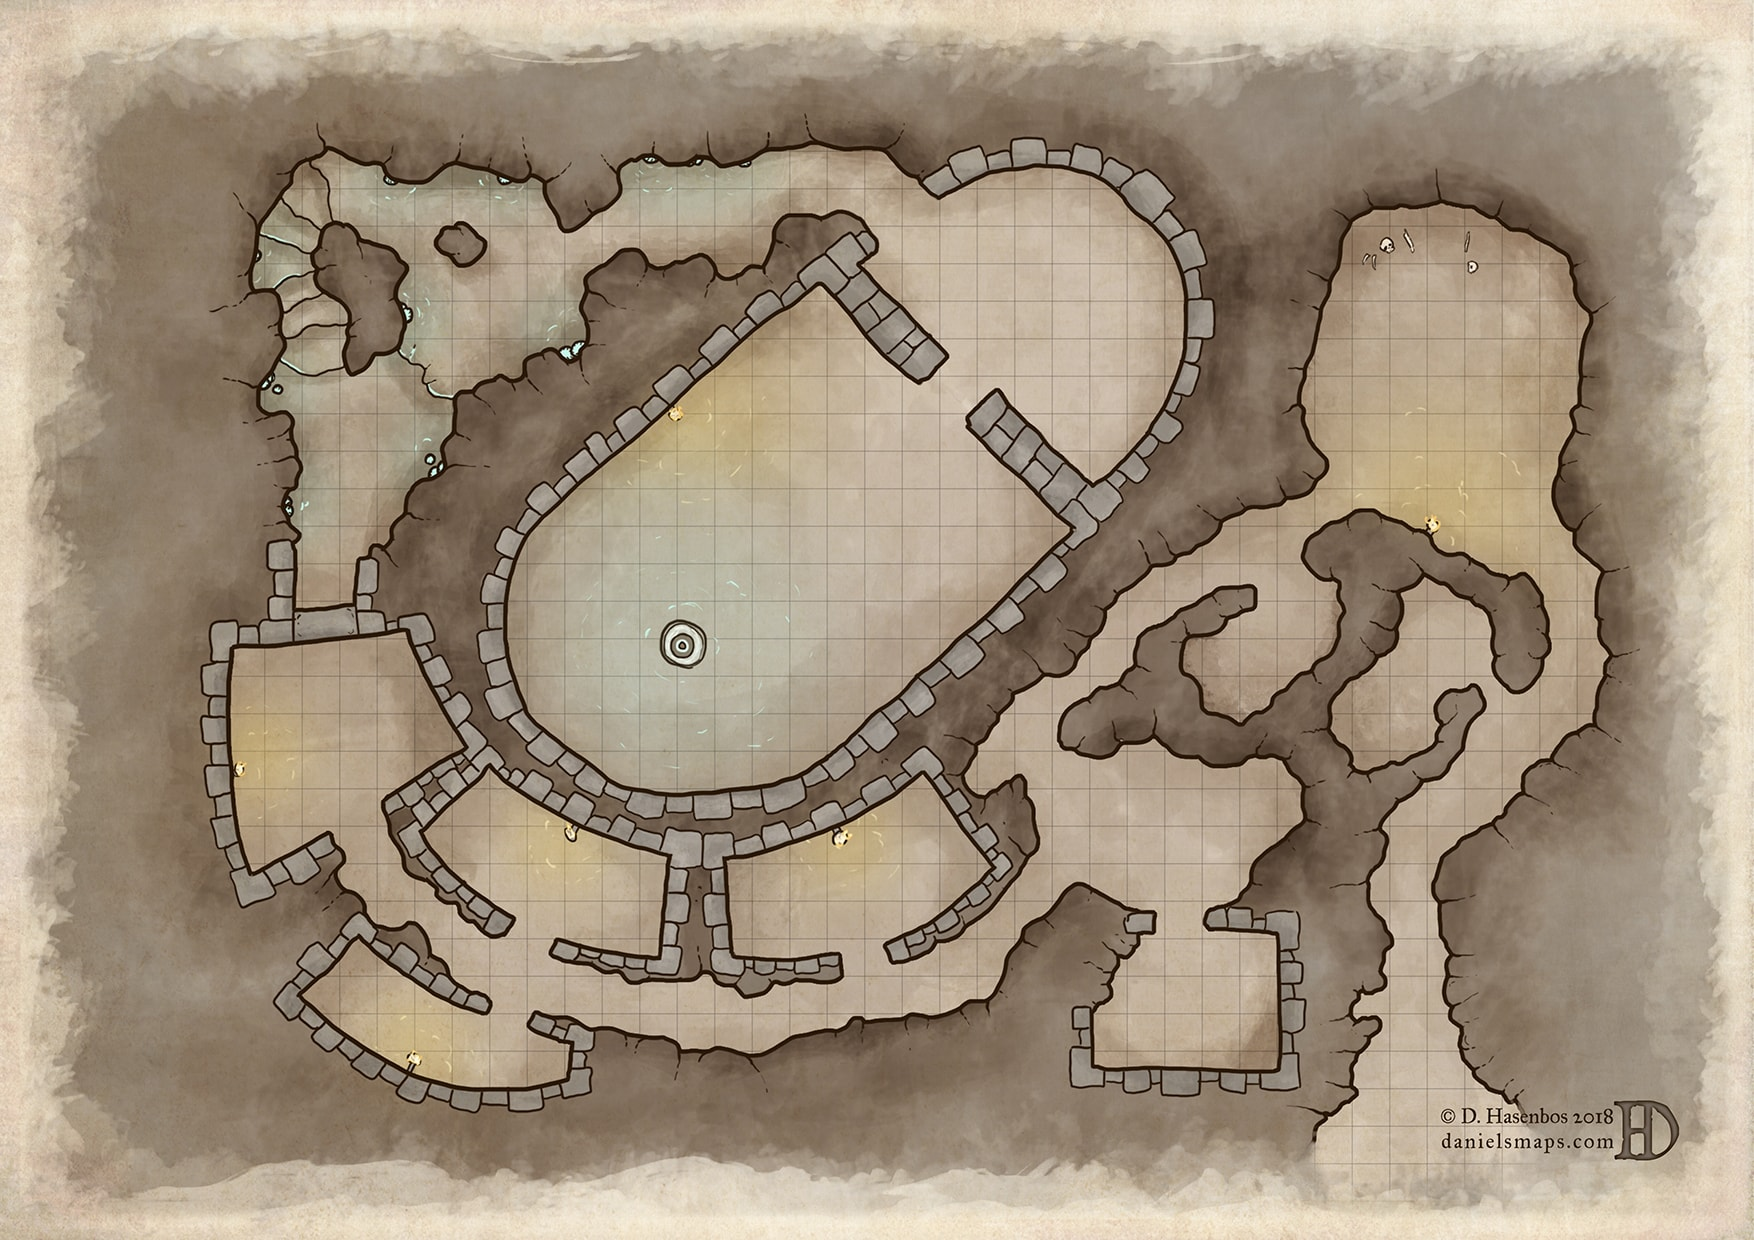 D&D and RPG cave fantasy map